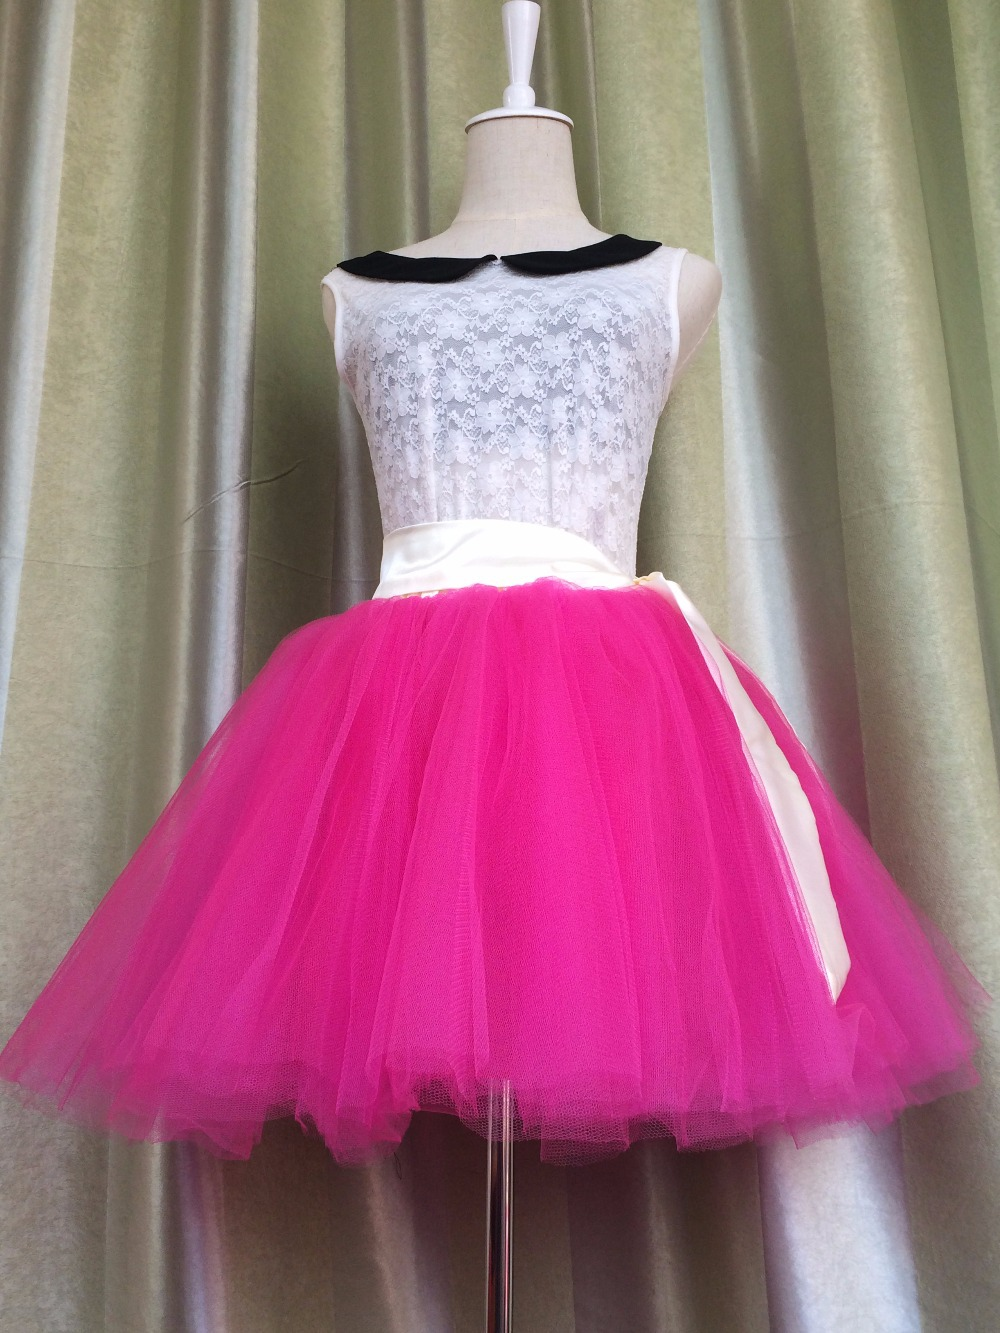 Aliexpress Buy Fluffy Tutu Skirt Girl Adult Or Teen Hot Pink With Yellow Belt Mini Tulle For Party Stage Ballet High Waist Pleat From